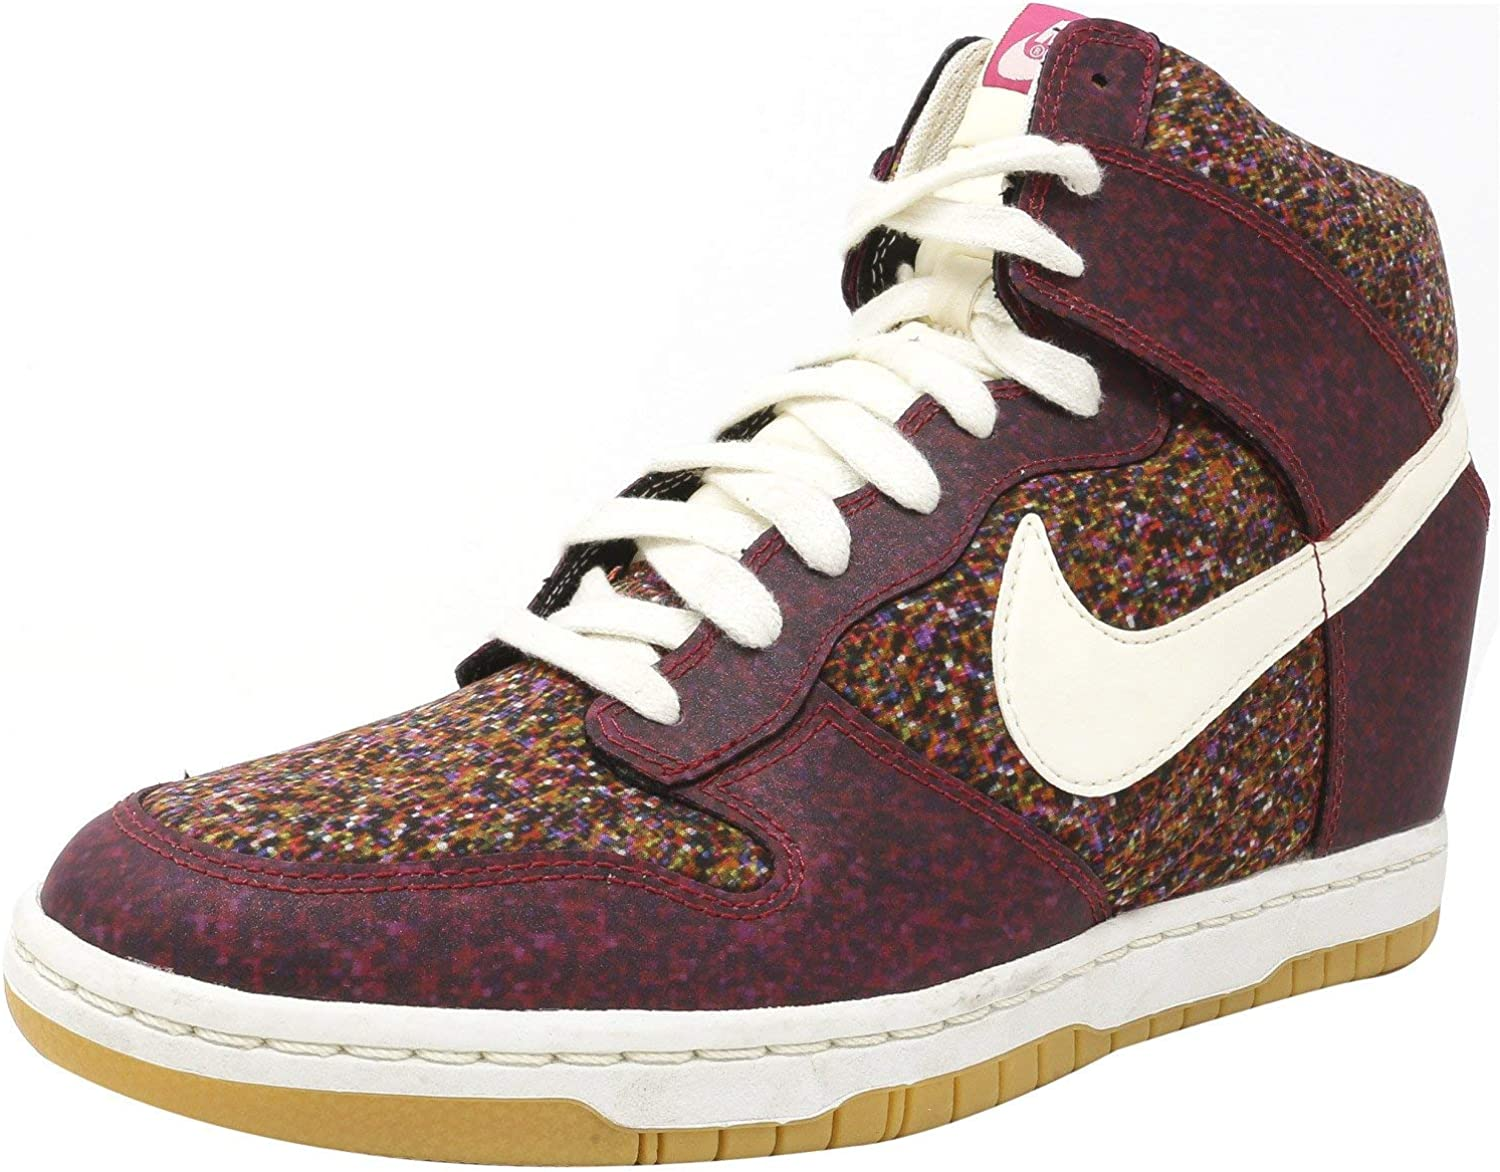 Nike Women's 540859 Ankle-High Basketball shoes